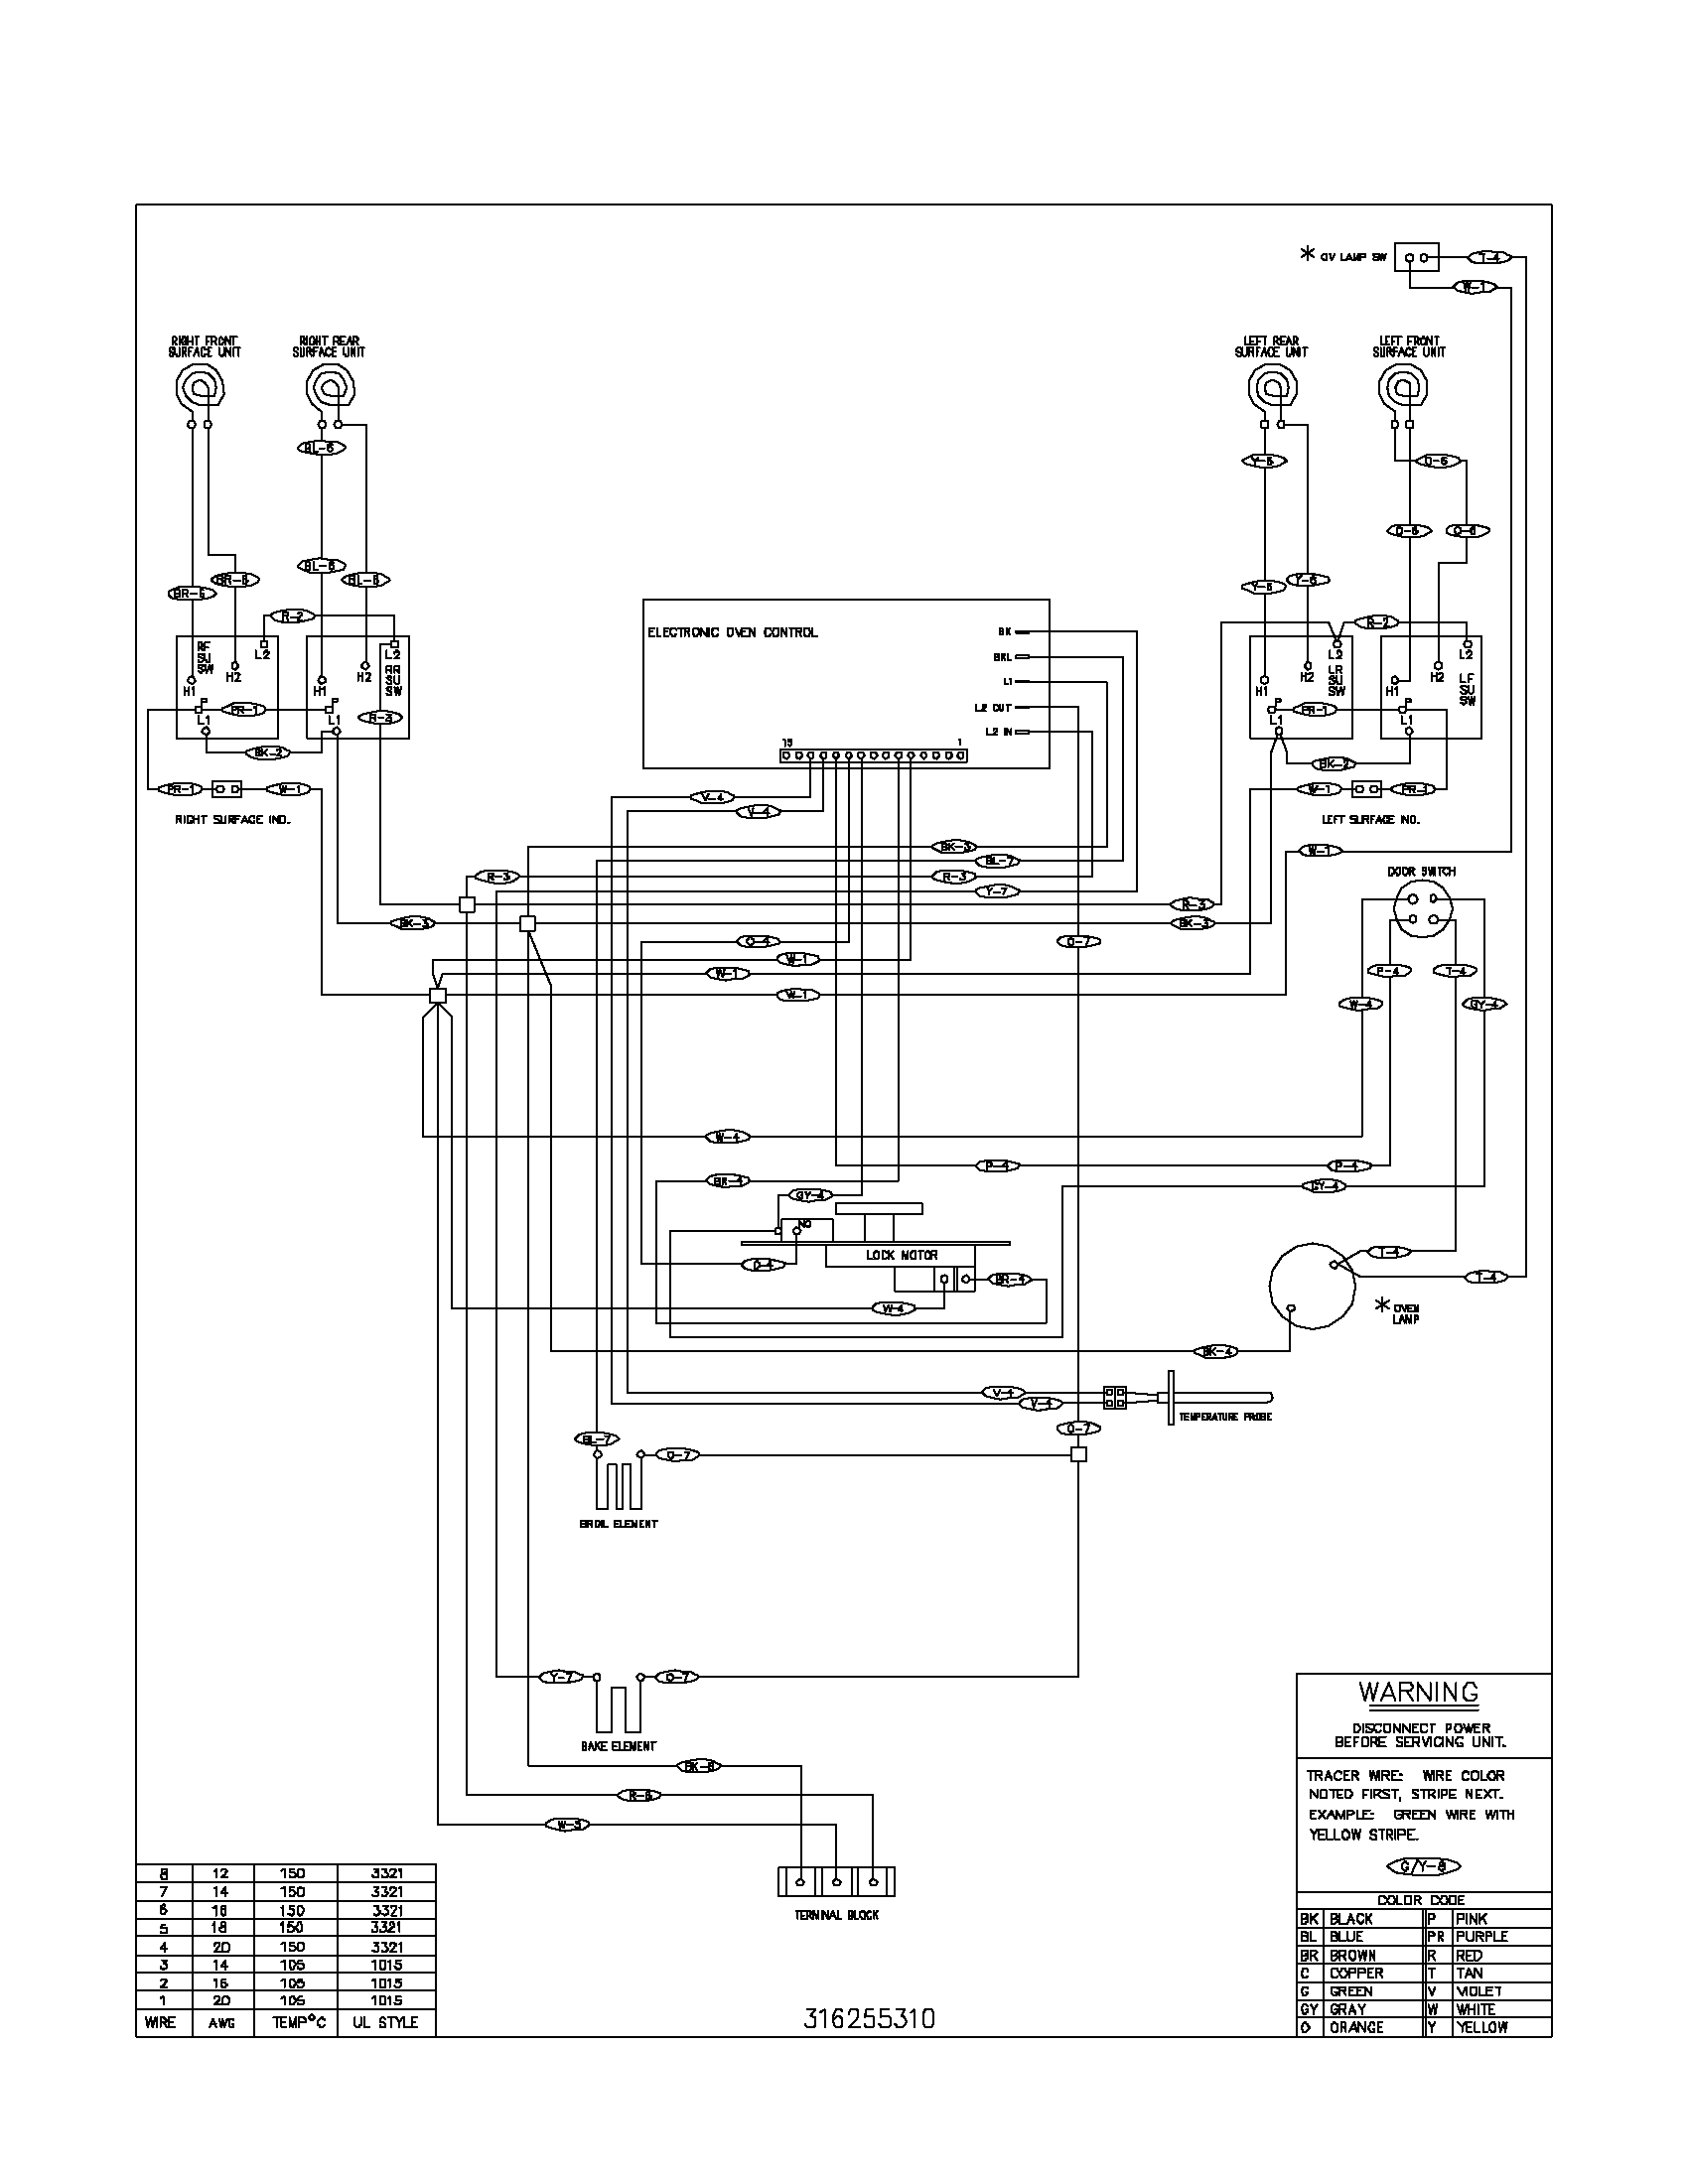 wiring electric oven diagram wiring wiring diagrams wiring diagram parts